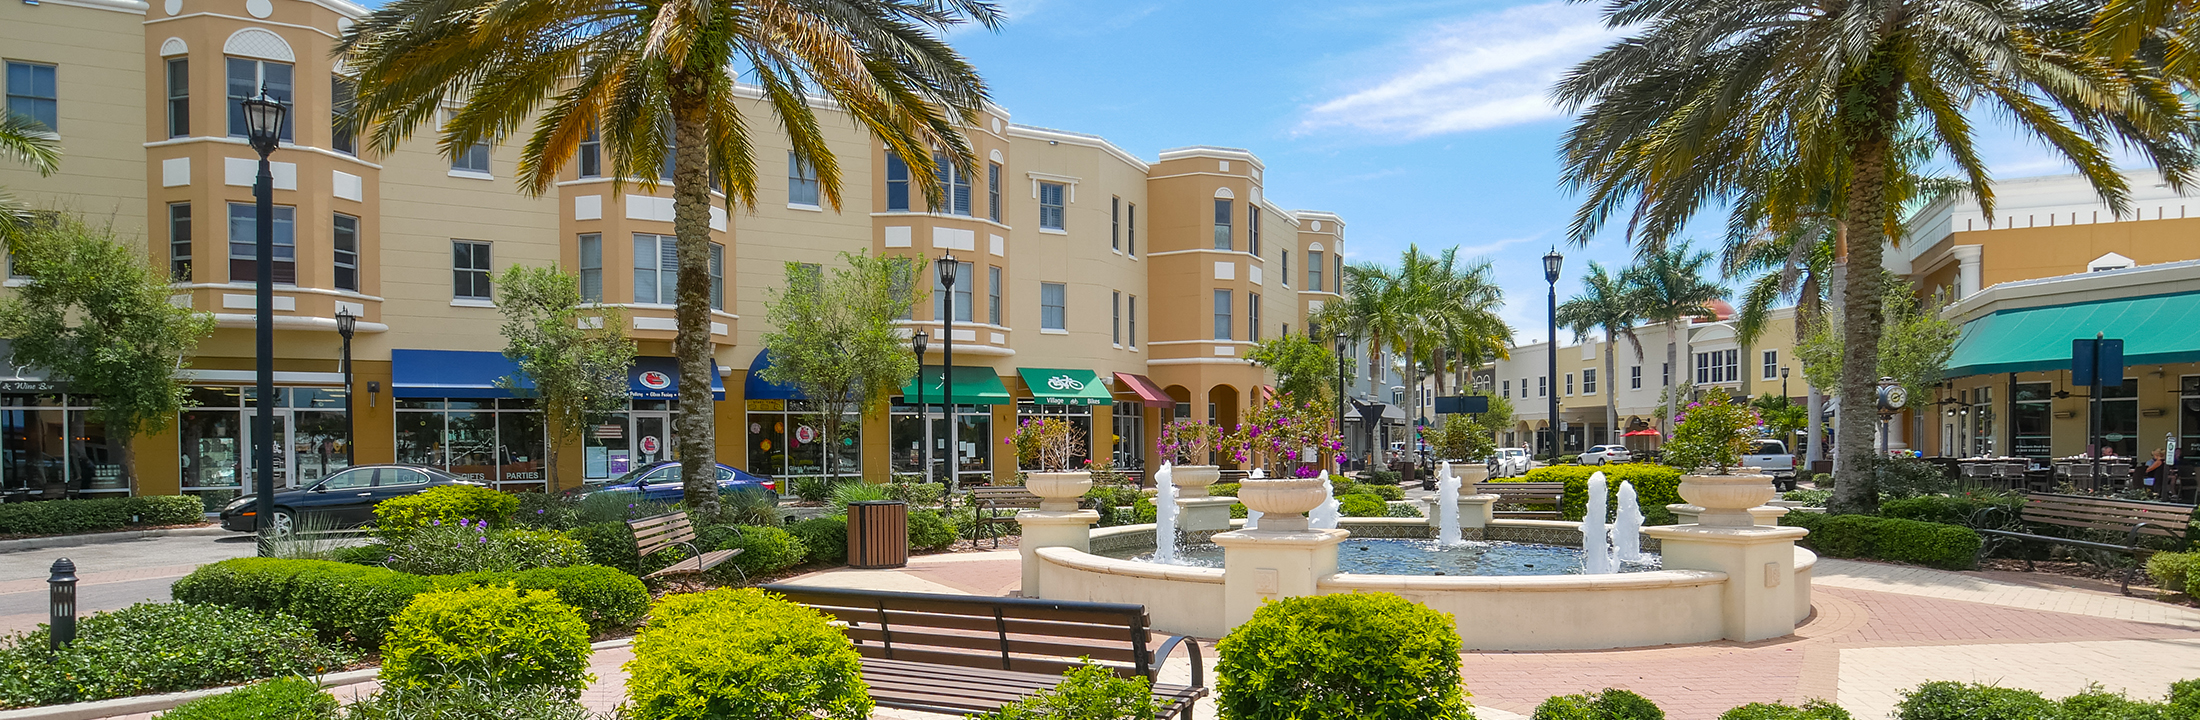 Lofts On Main Street Condos For Sale Lakewood Ranch Fl